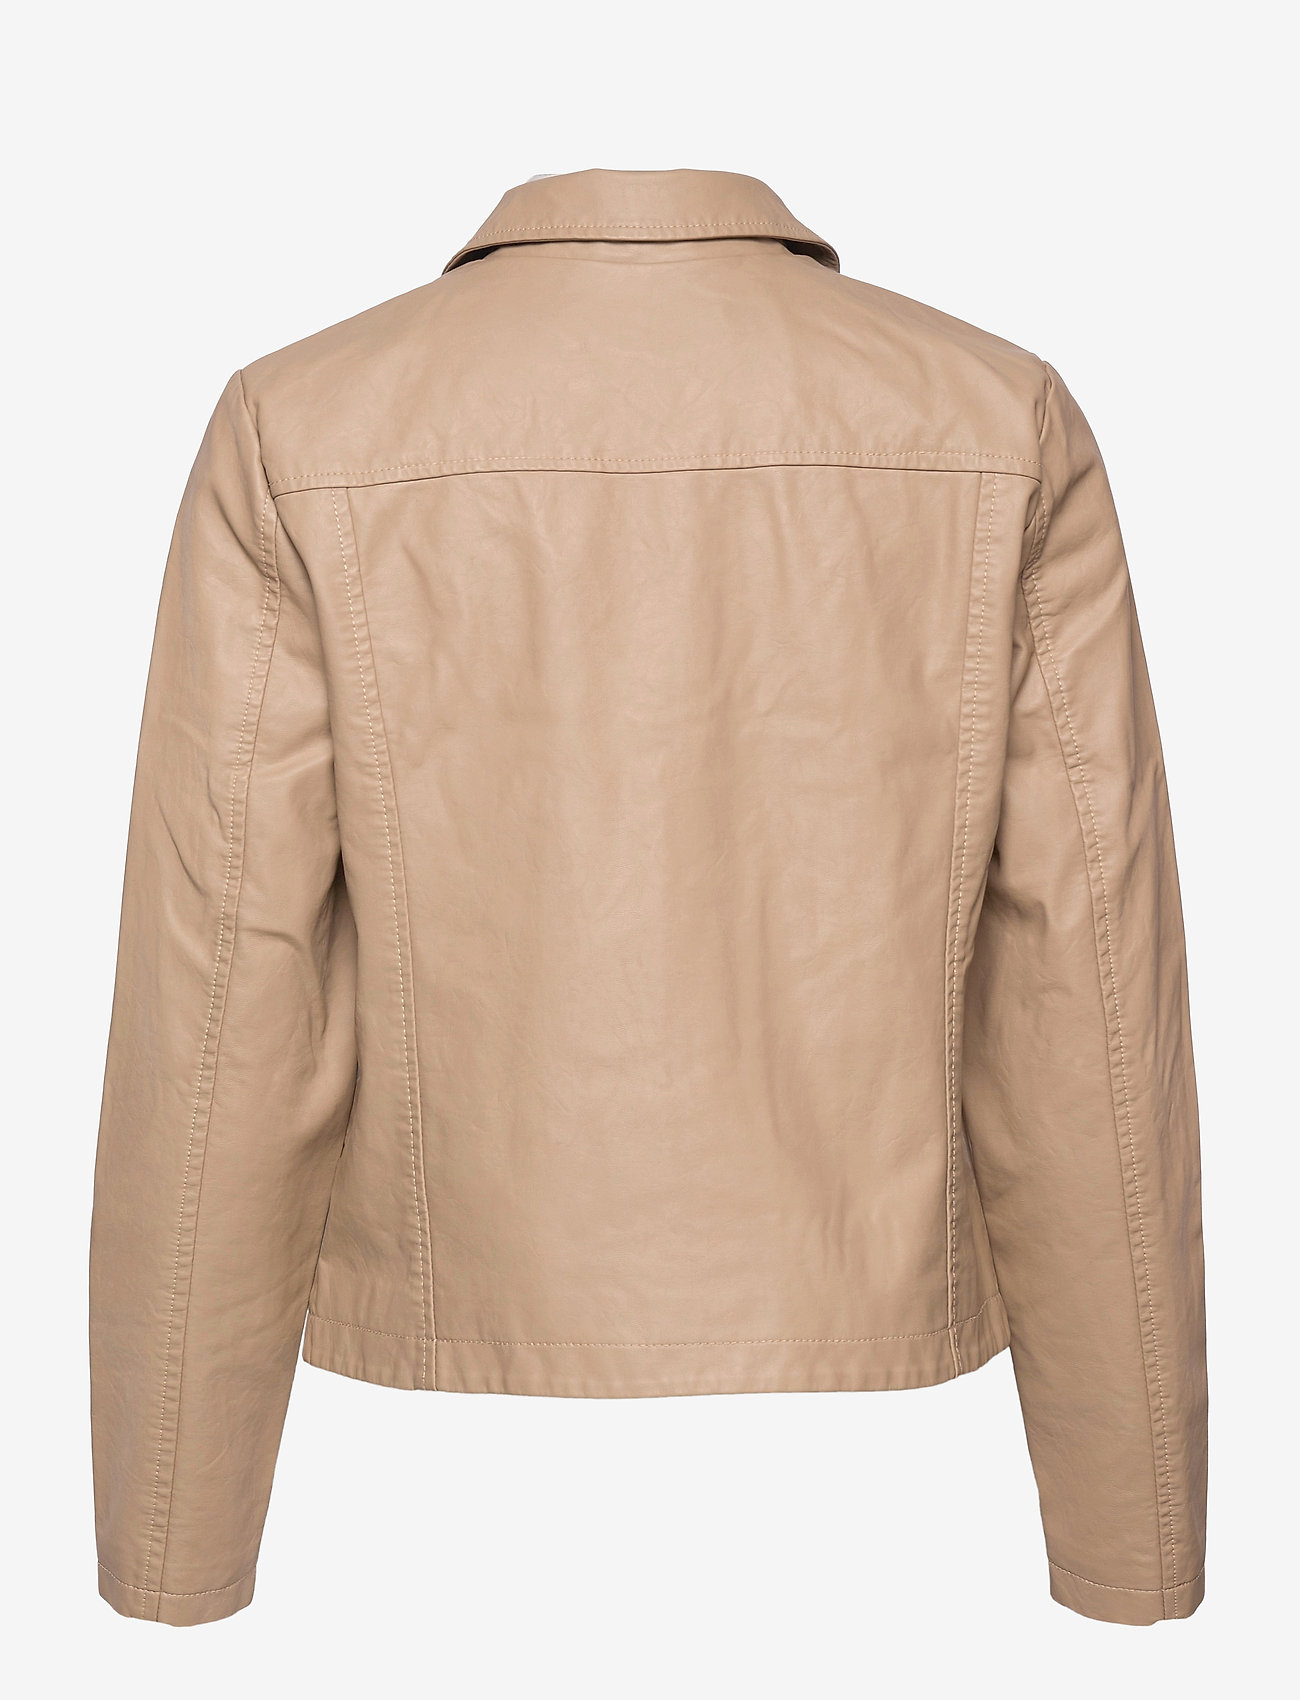 Soyaconcept - SC-GUNILLA - leather jackets - camel - 1